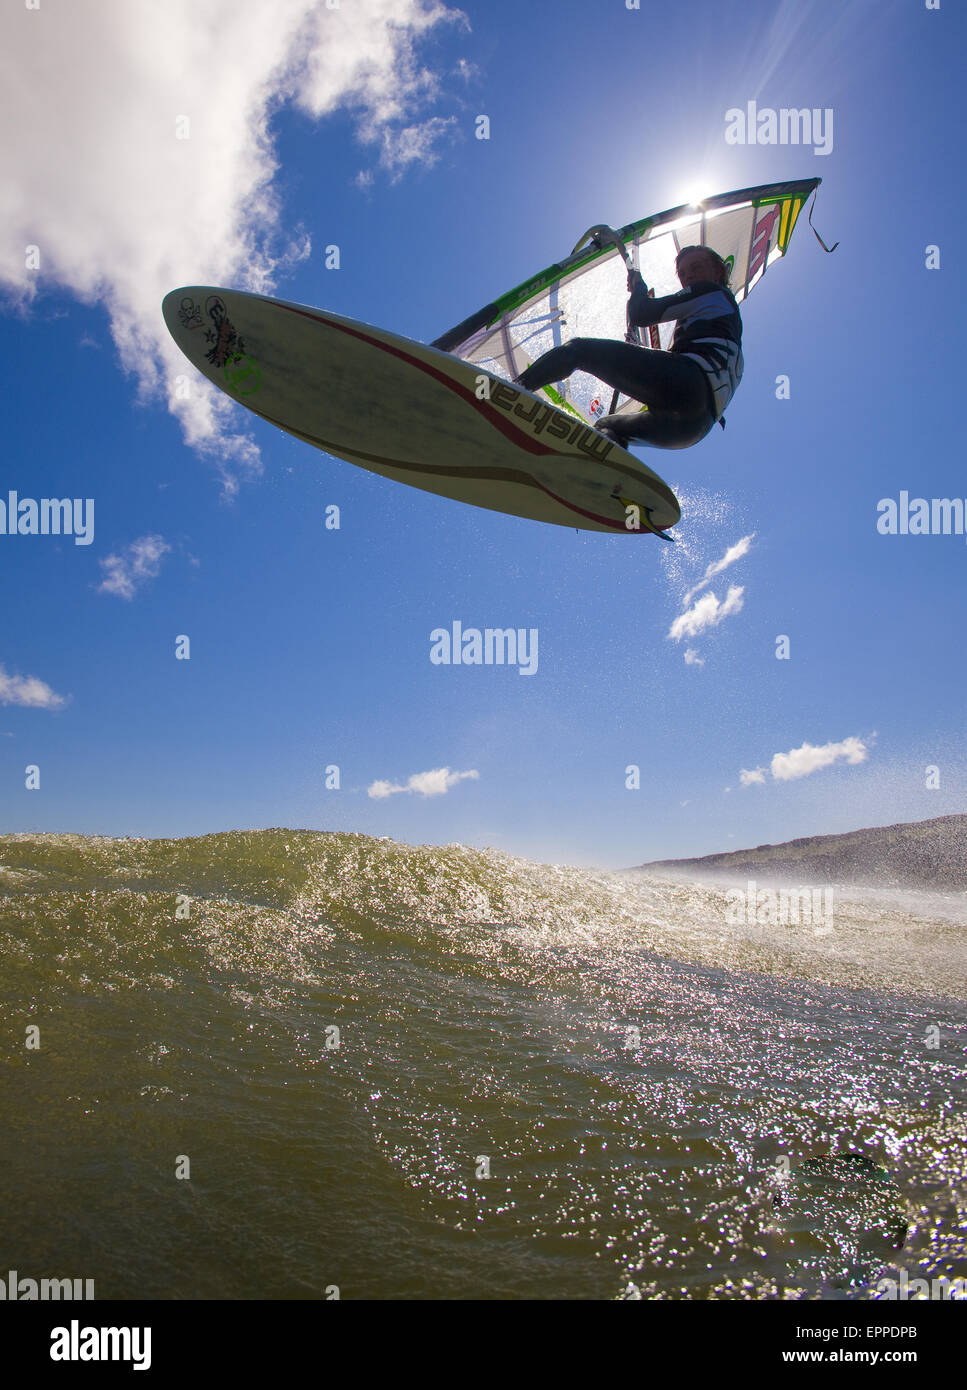 Windsurfer airs it out at Maryhill Sate Park. - Stock Image